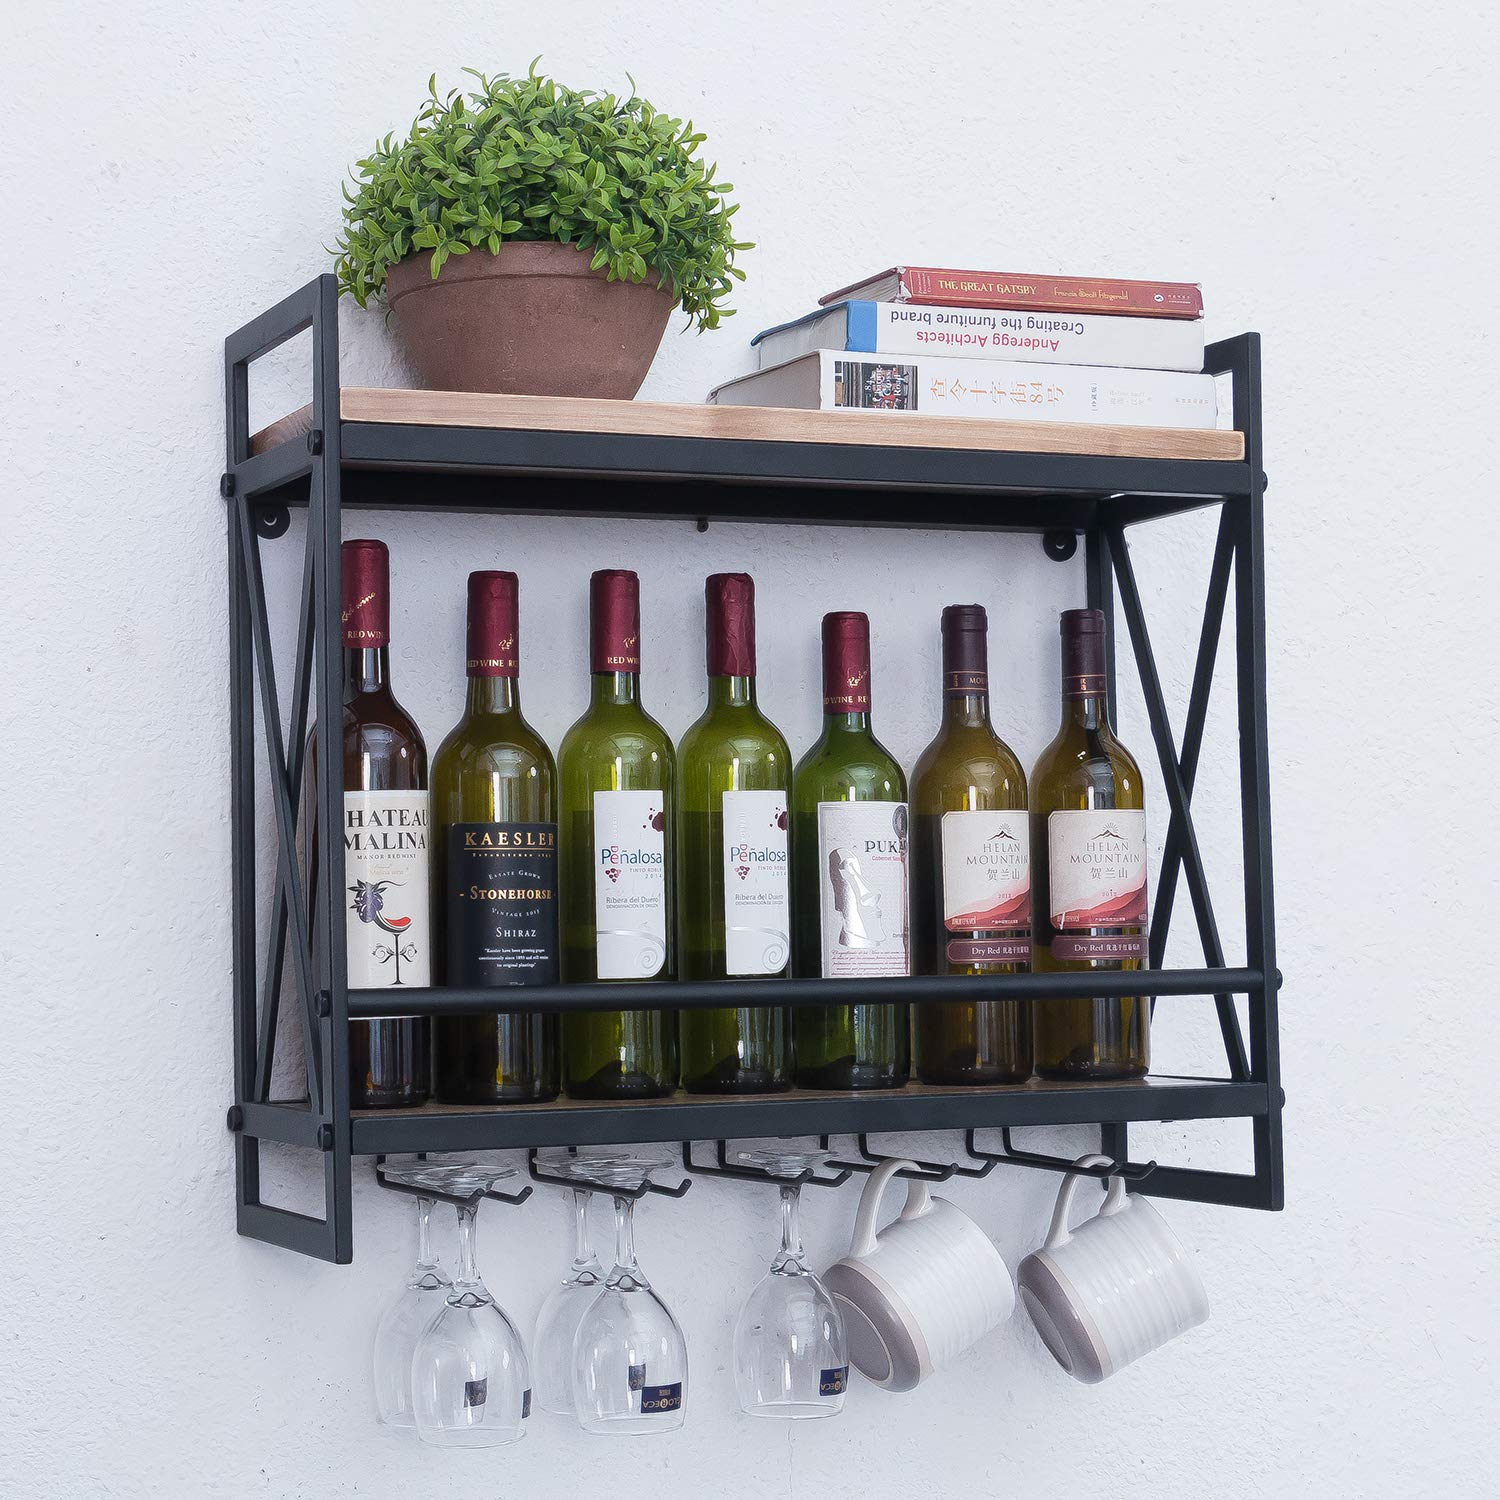 Rustic Wall Mounted Wine Racks with 5 Stem Glass Holder,23.6in Industrial Metal Hanging Wine Rack,2-Tiers Wood Shelf Floating Shelves,Home Room Living Room Kitchen Decor Display Rack